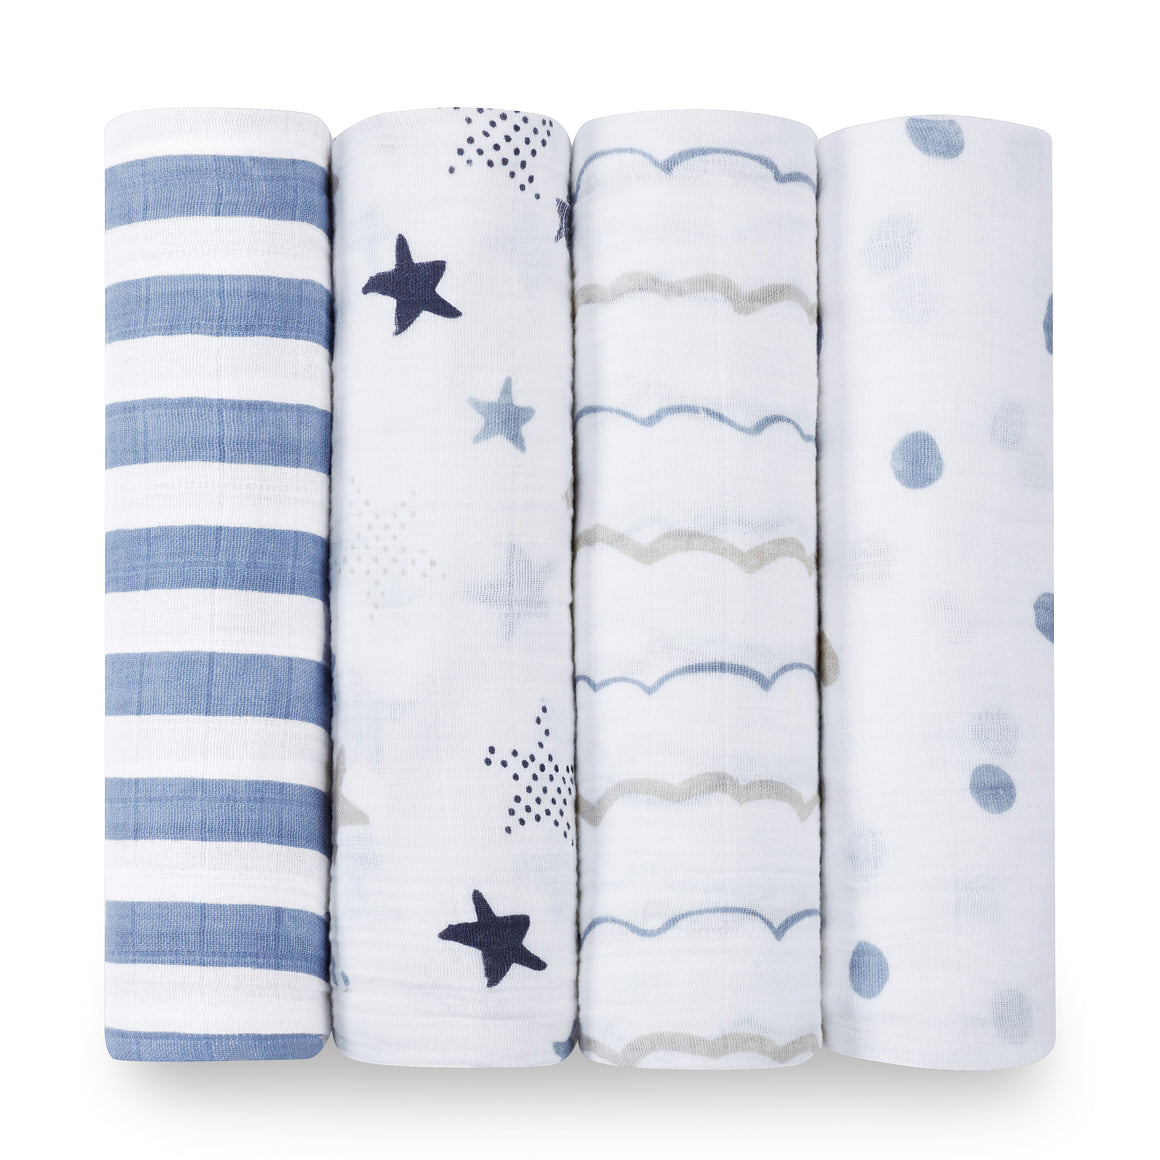 aden + anais rock star 4 PACK CLASSIC SWADDLE